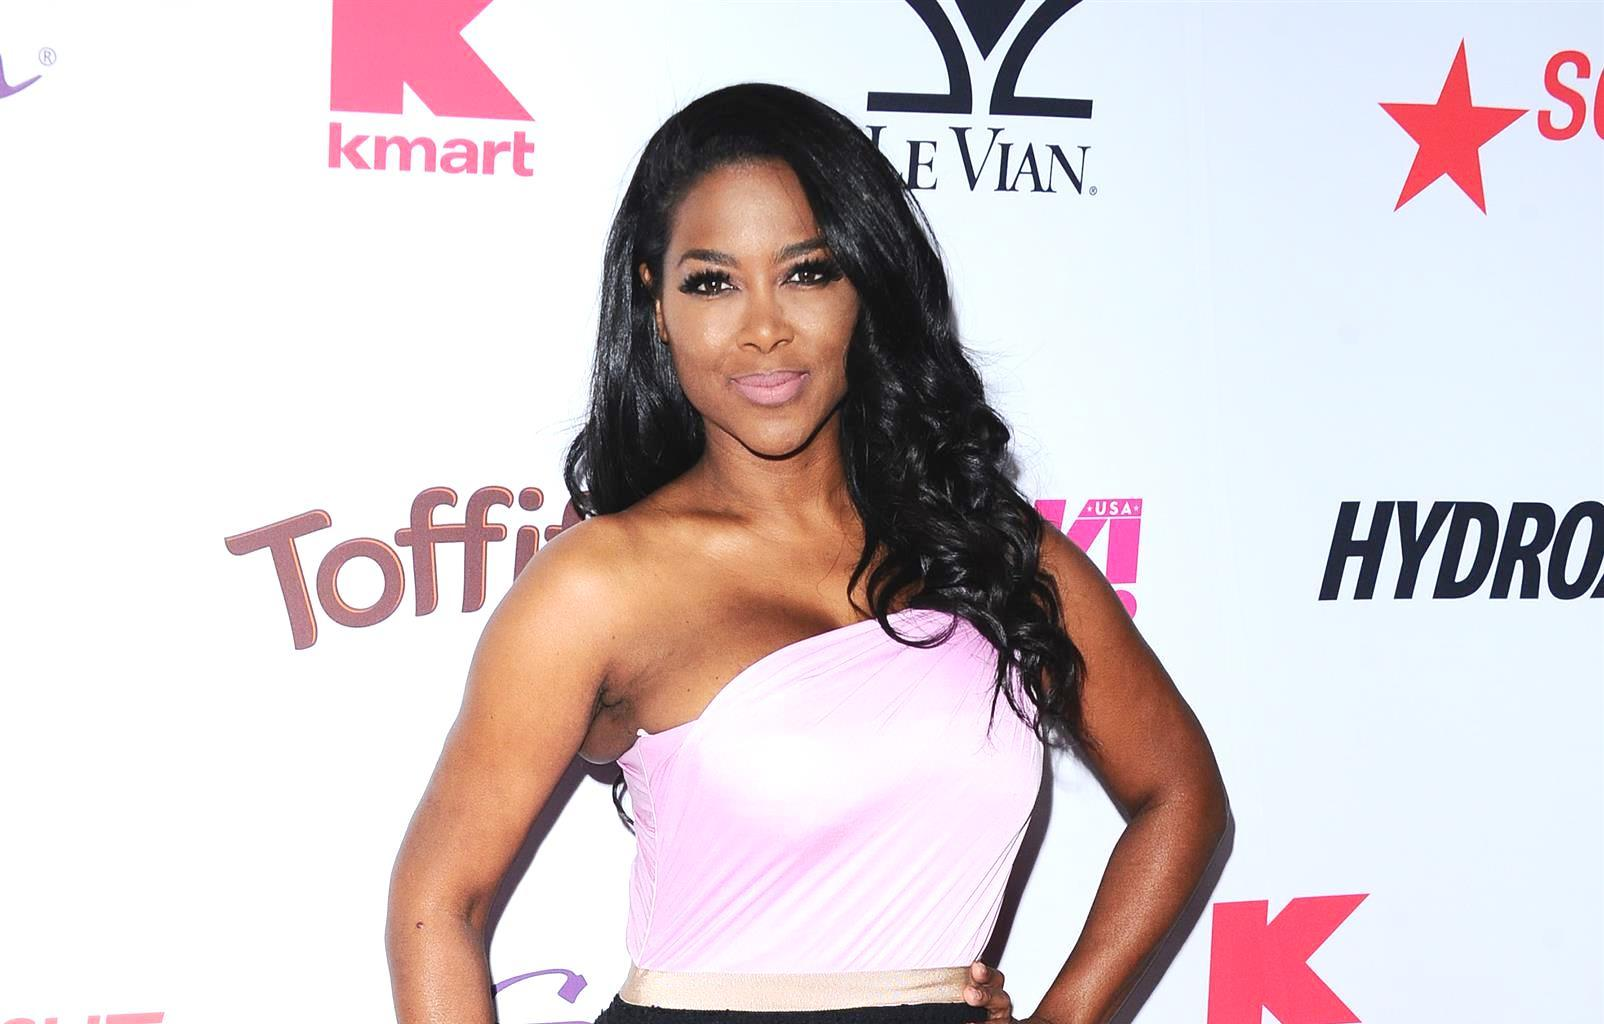 Kenya Moore Surprises Fans With A Scene From A Sitcom In Which She Starred - Check Out The Video